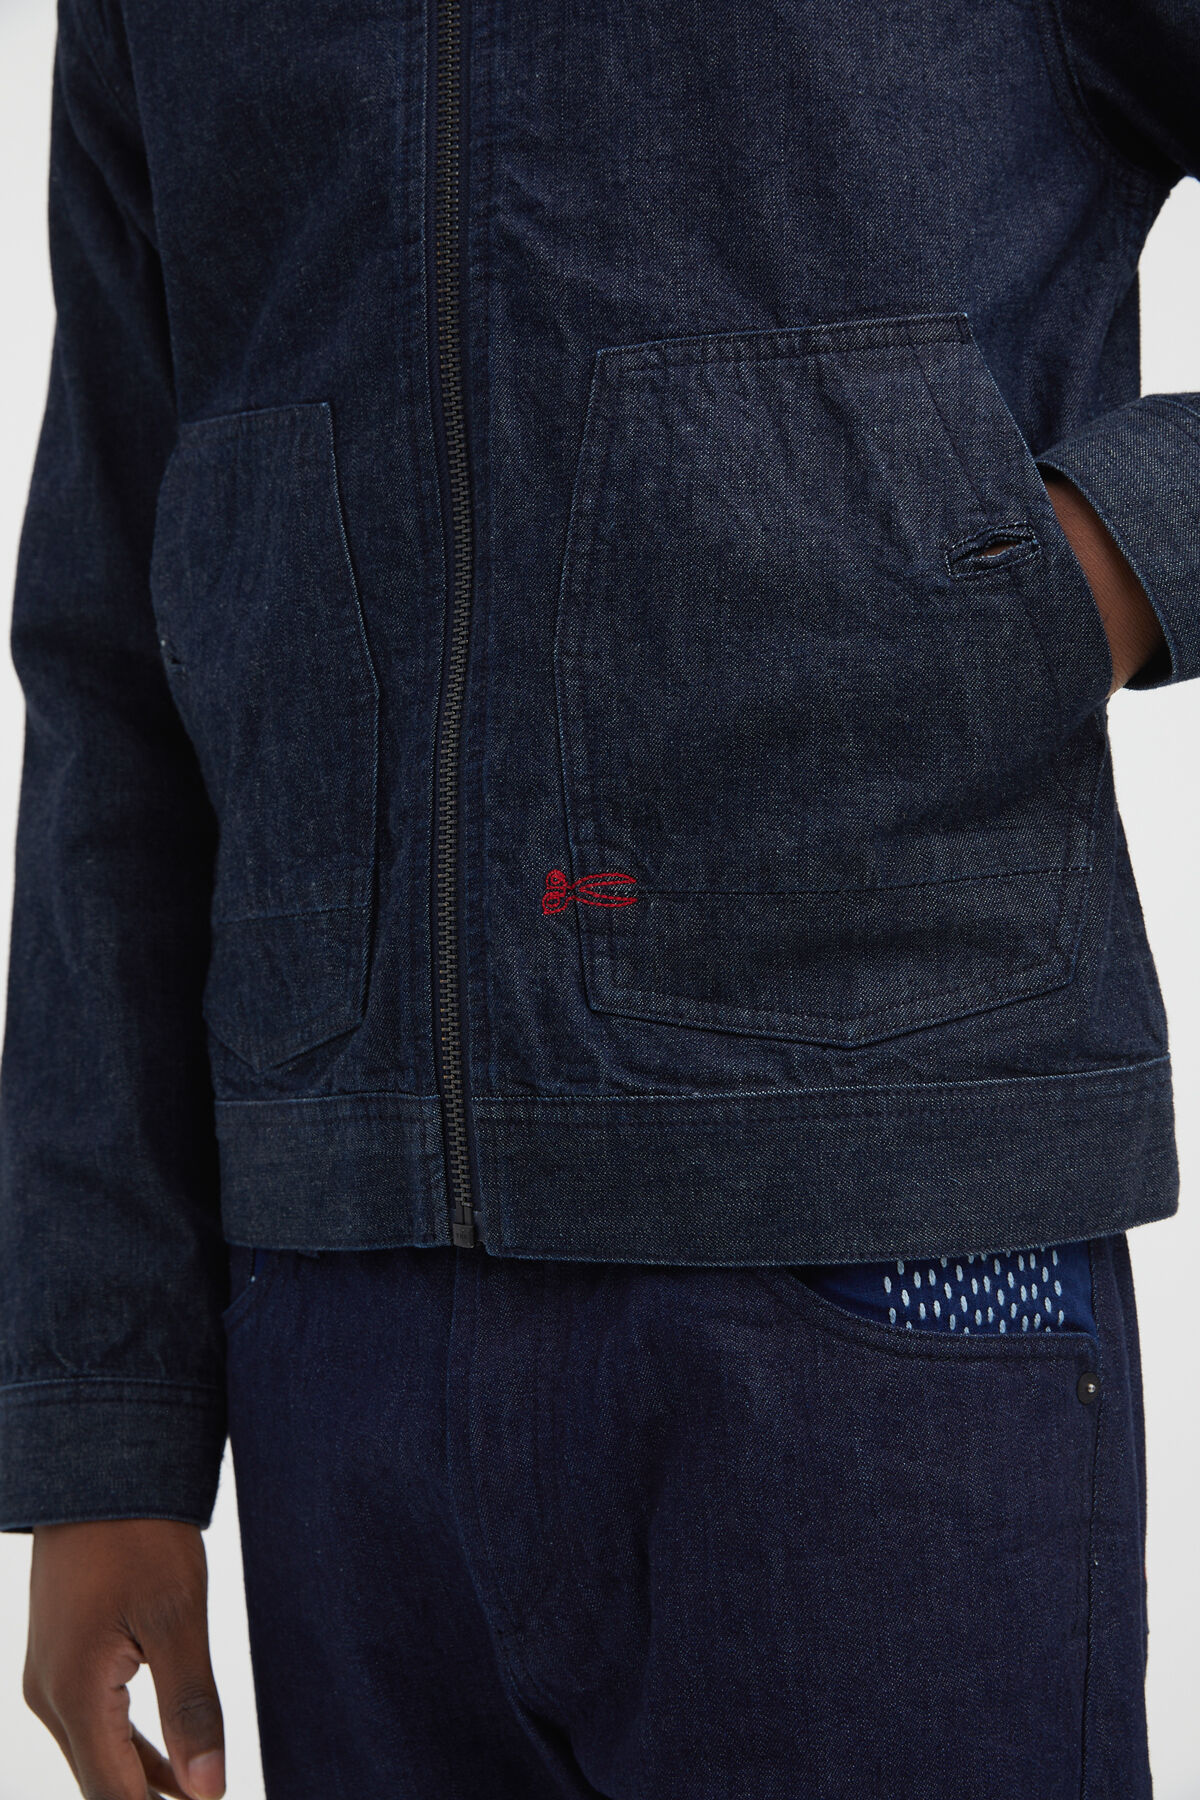 PACE JACKET 1MIX Recycled, Eco-Friendly Denim - Regular Fit